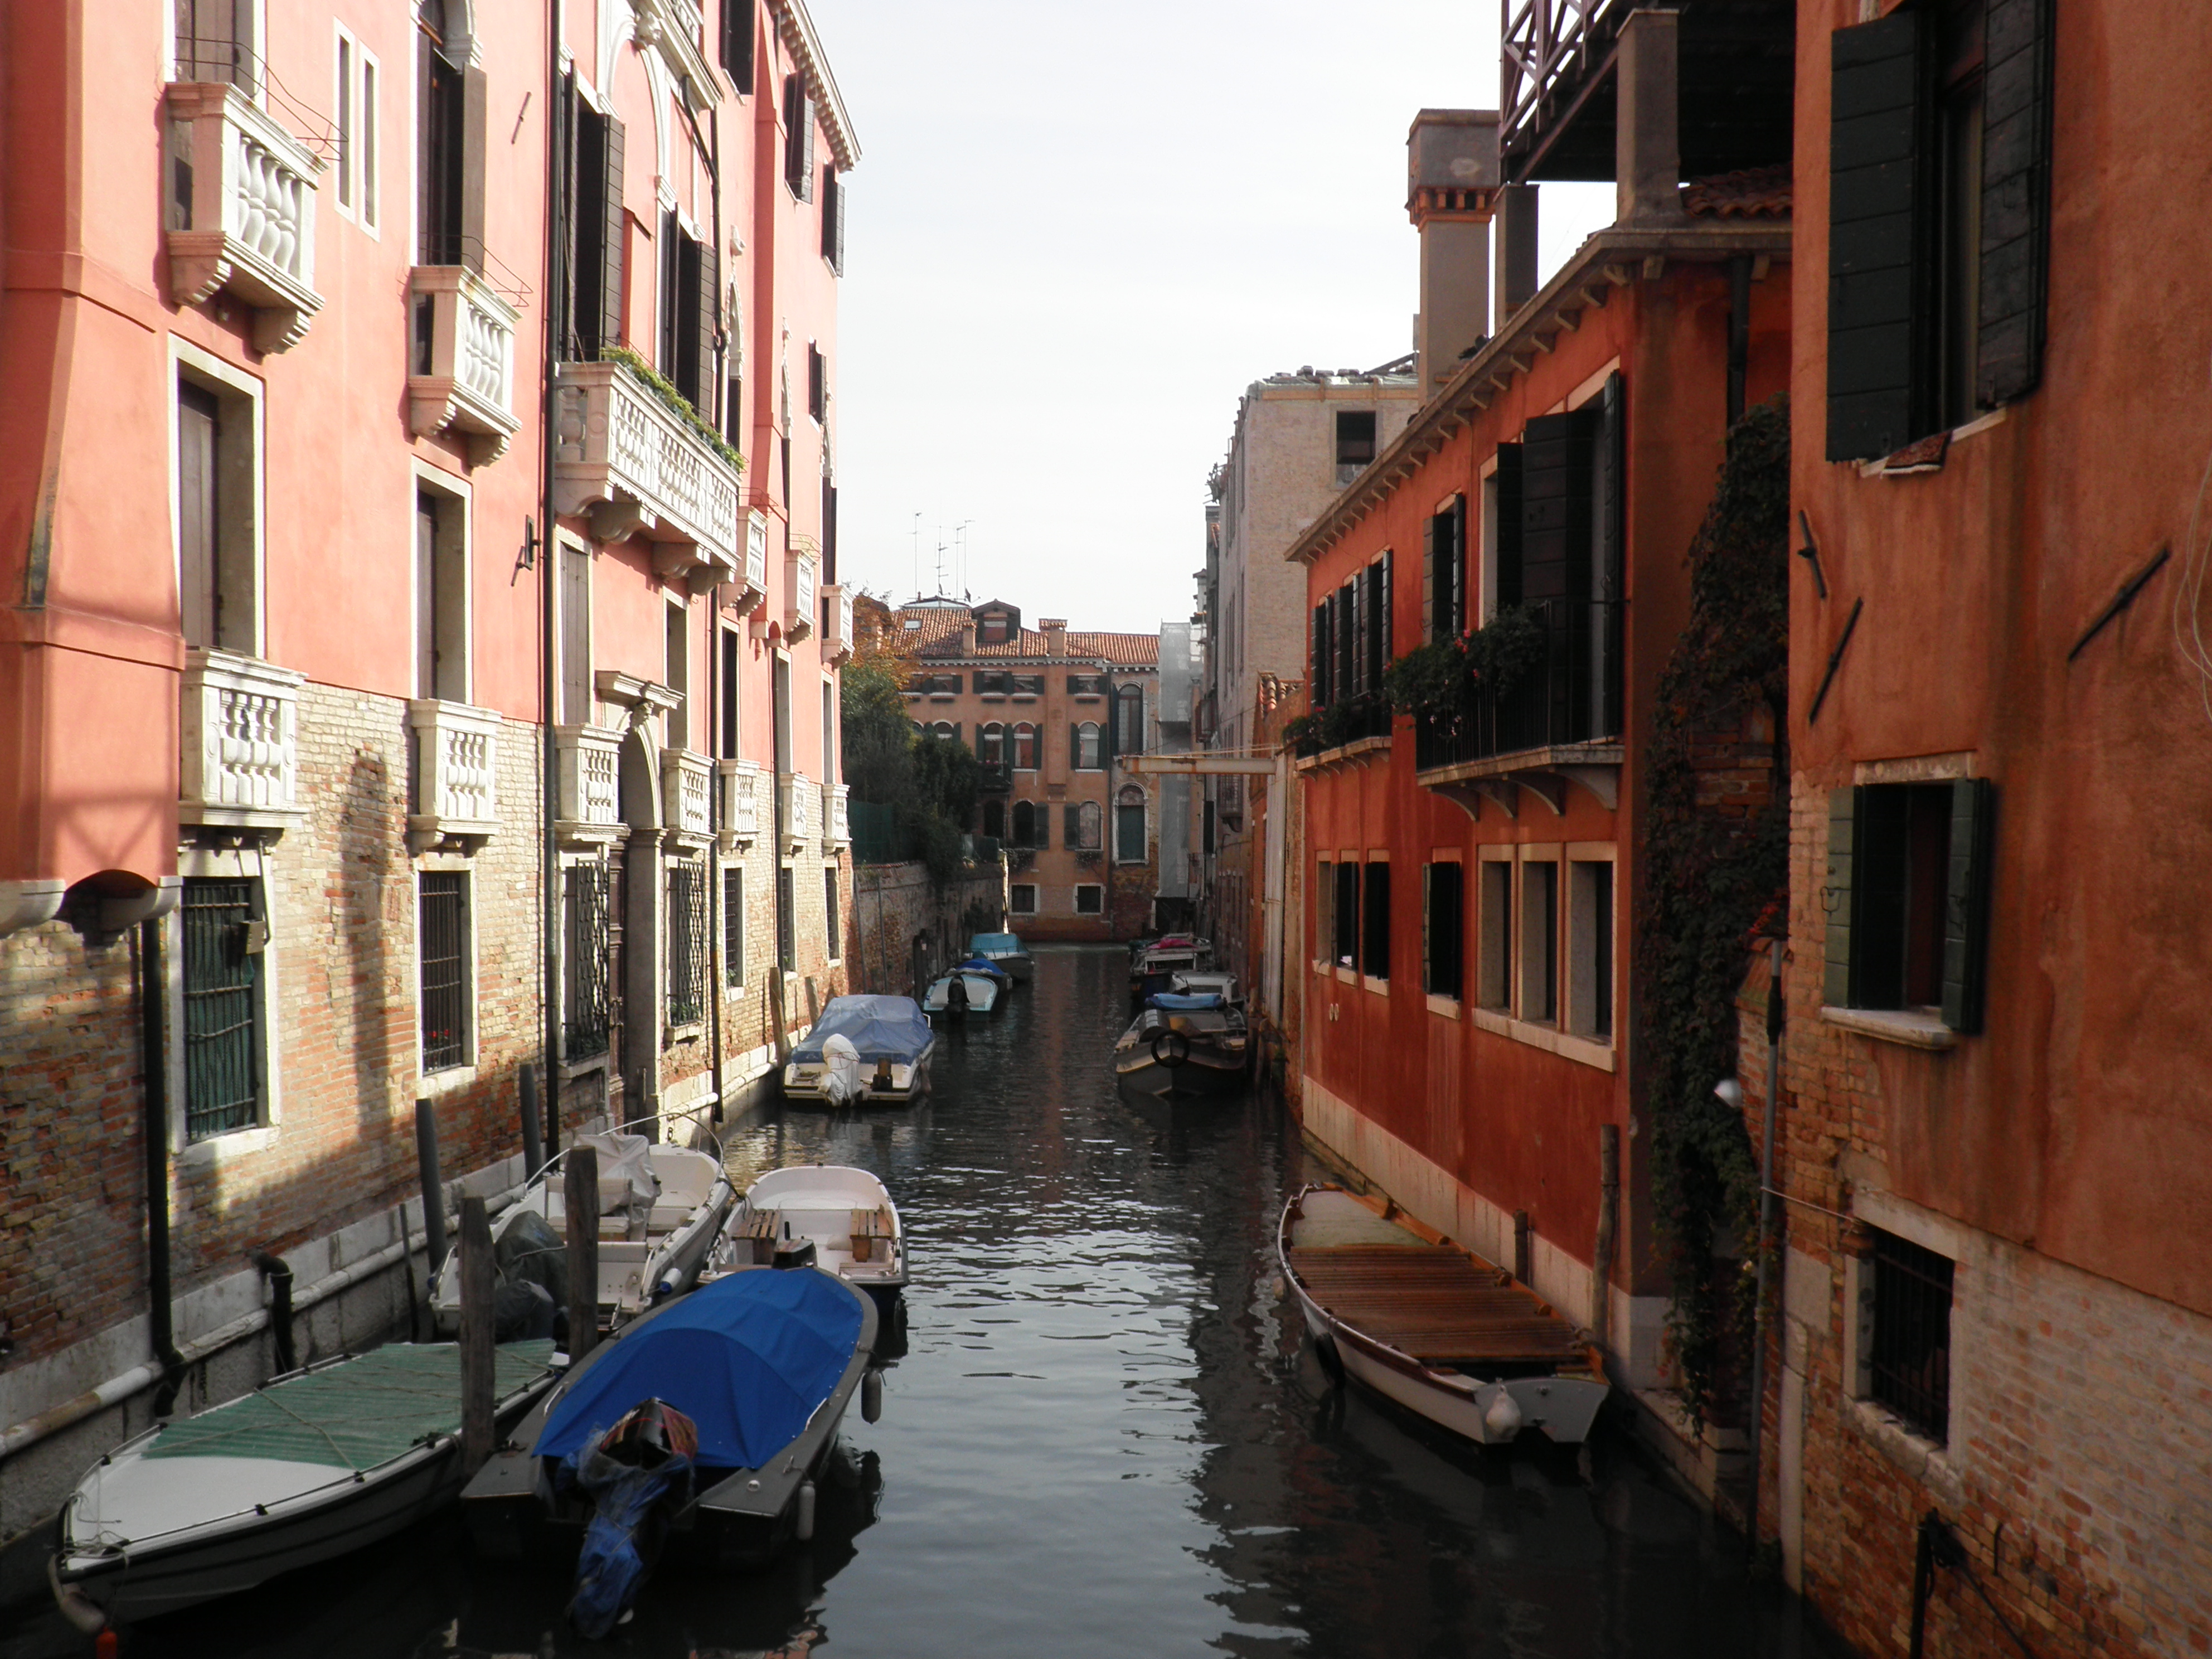 Venice canal, Architecture, Boats, Buildings, Canal, HQ Photo